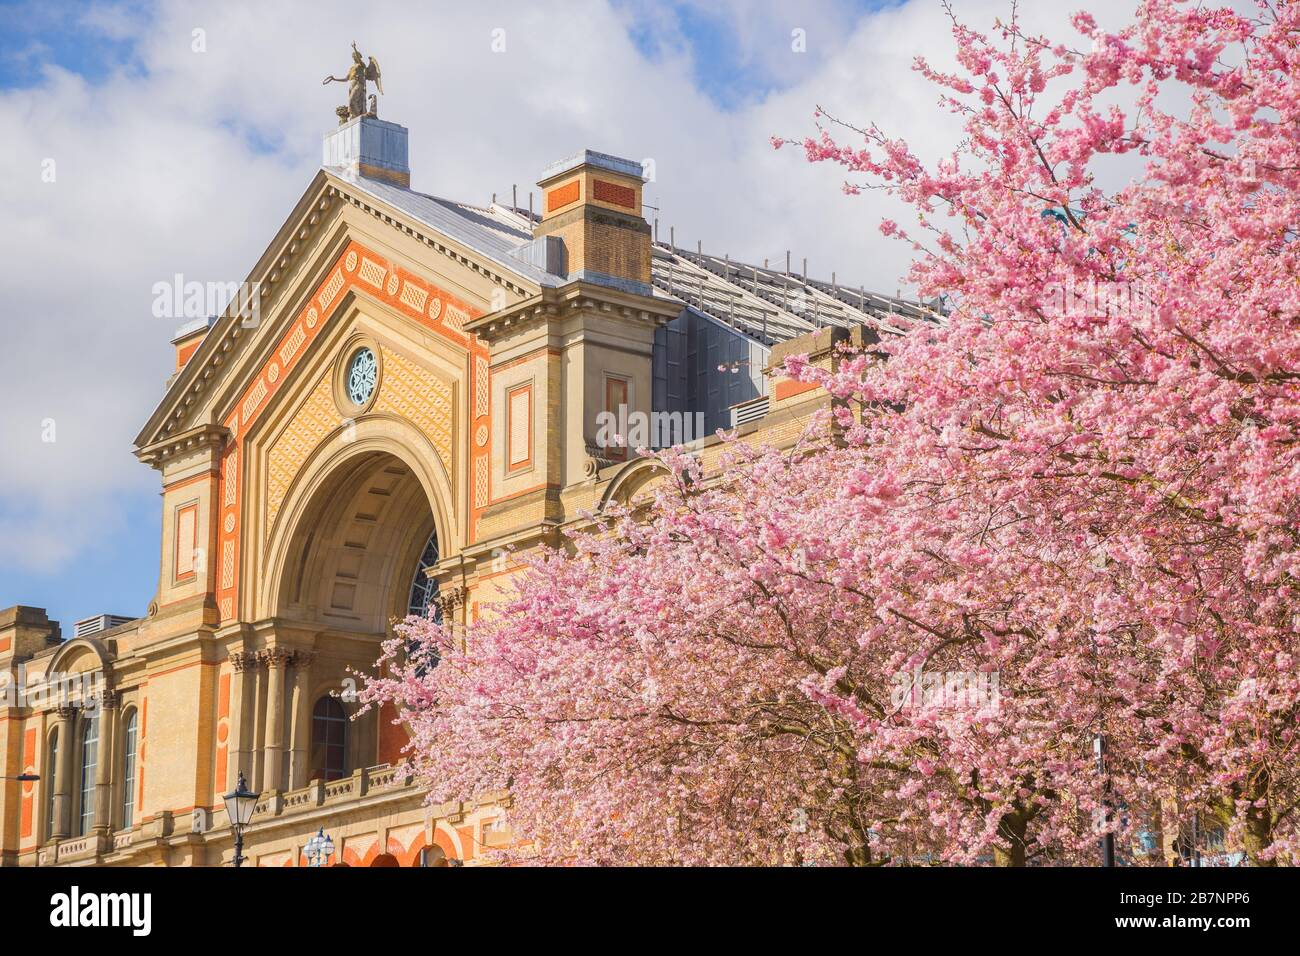 Springtime, Alexandra Palace with cherry blossoms in London, England Stock Photo